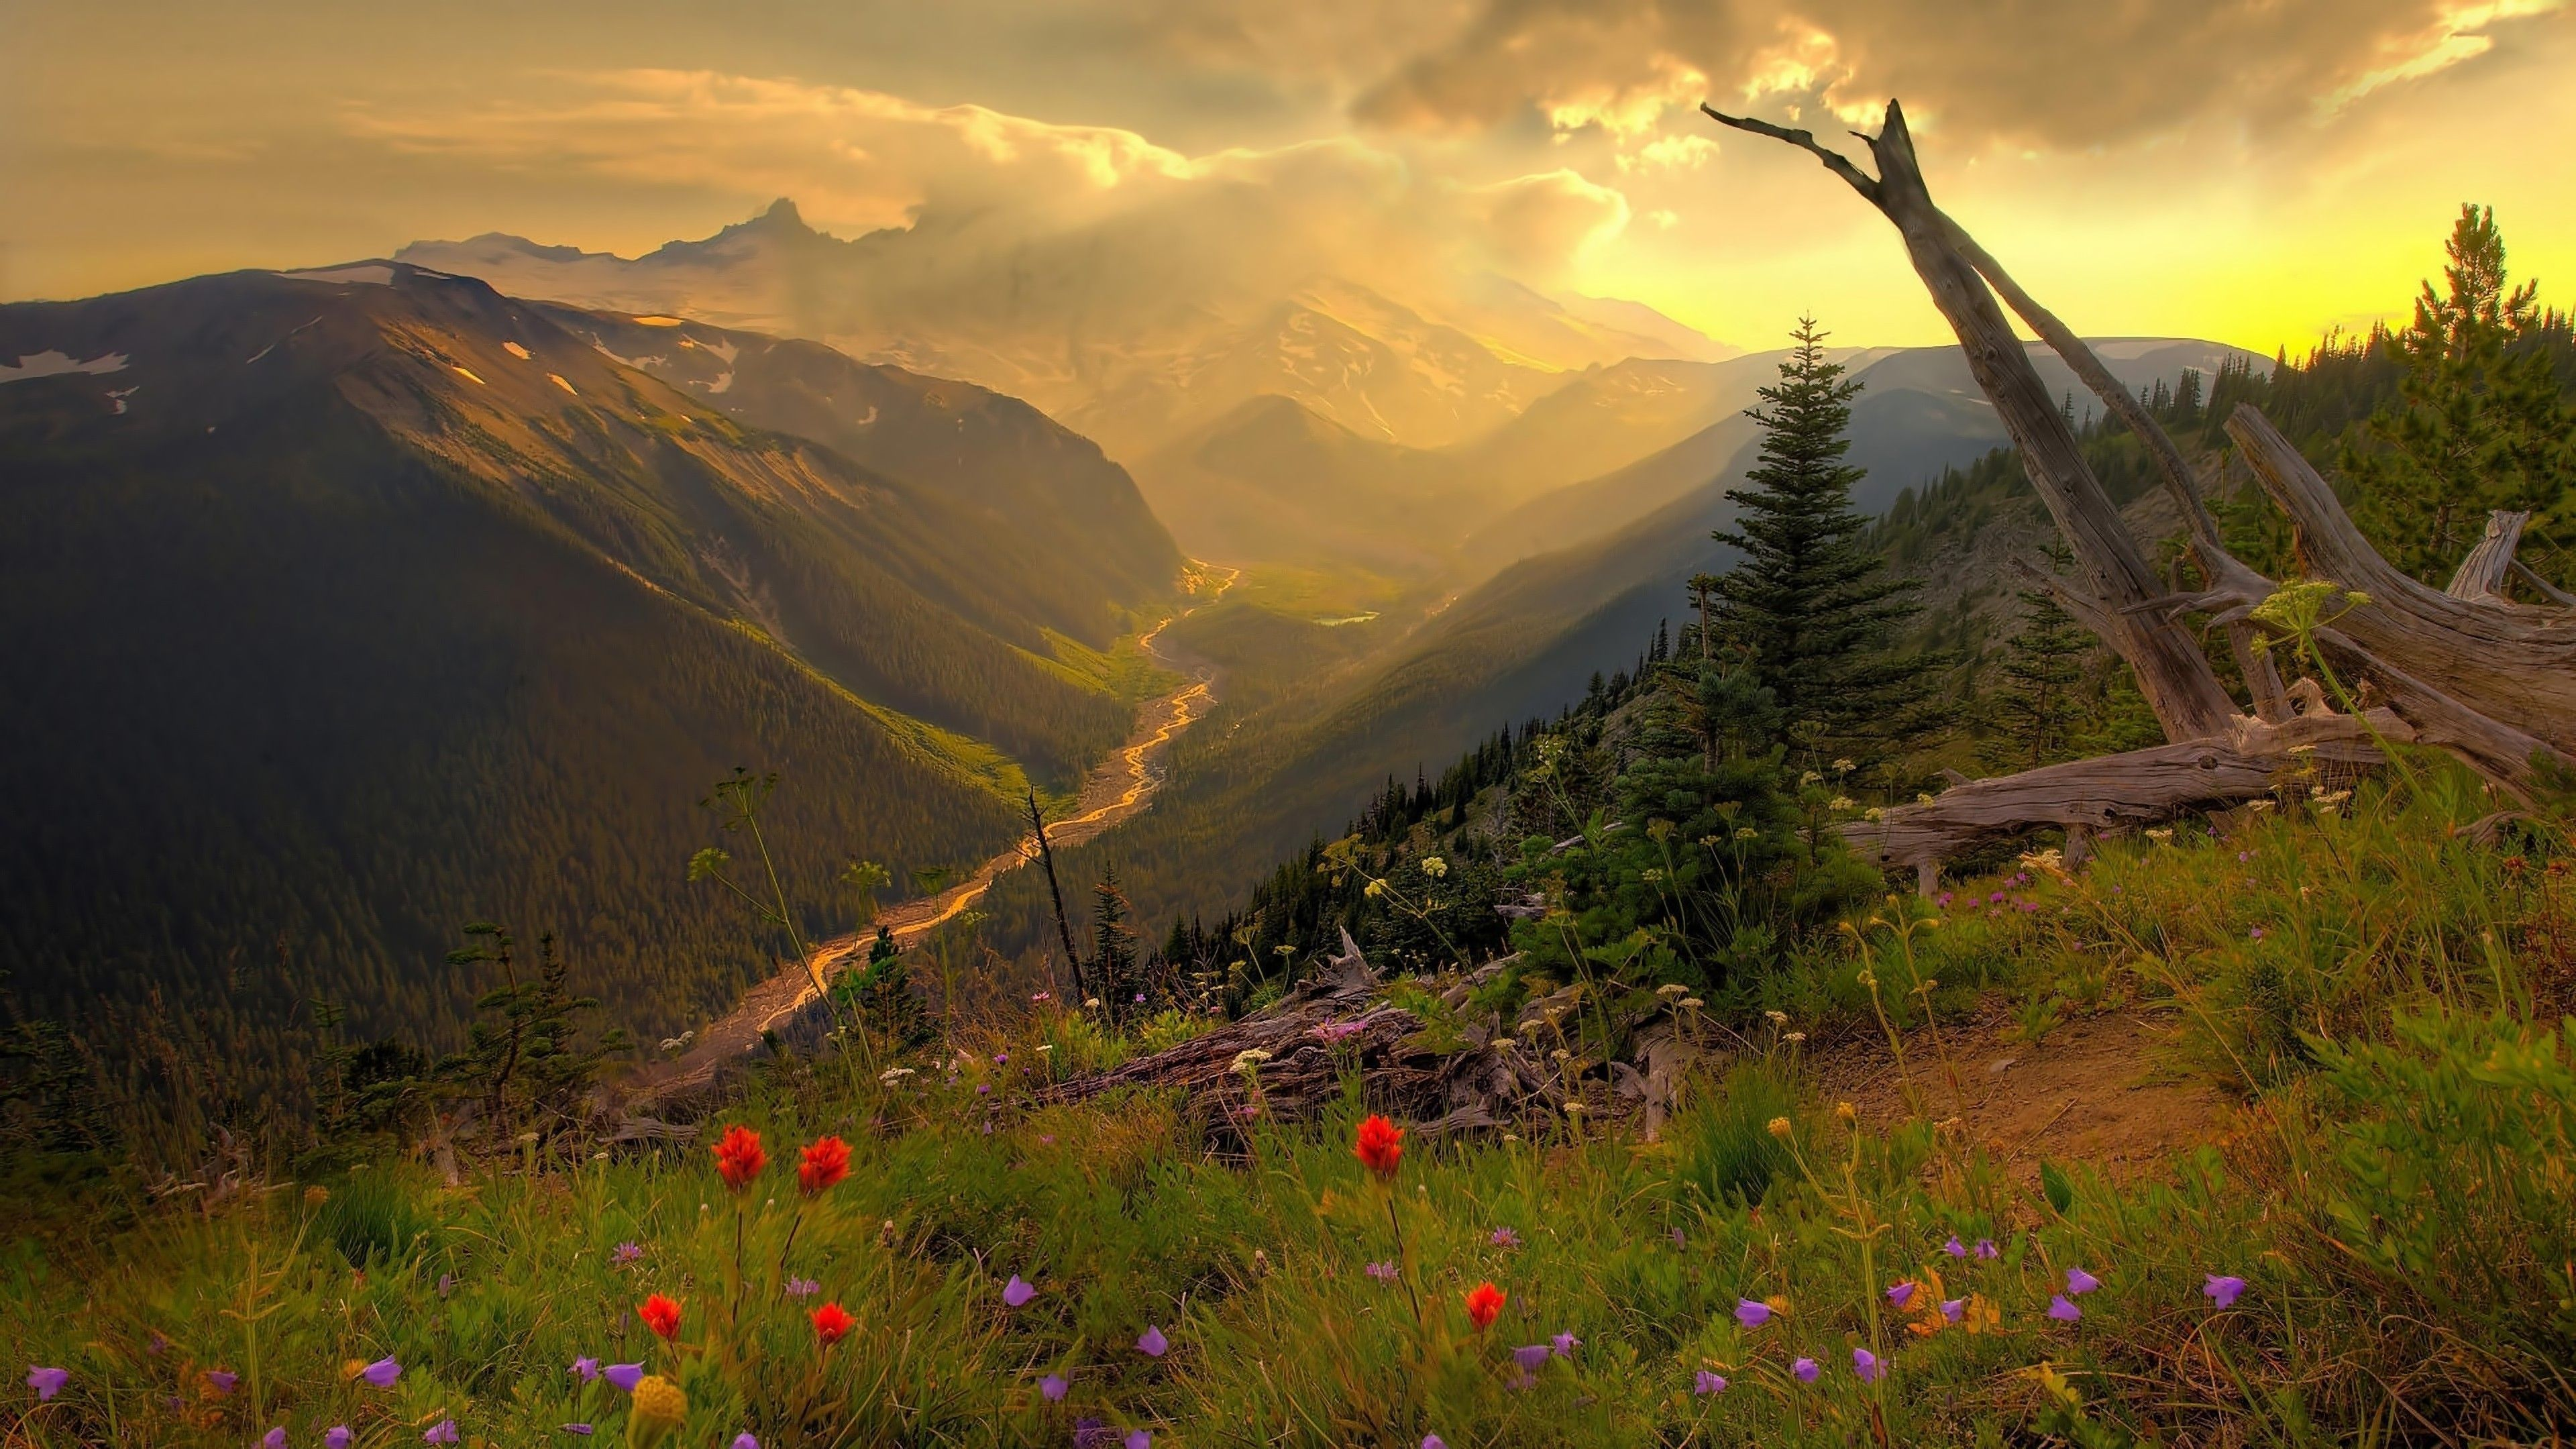 4k Nature Wallpapers Top Free 4k Nature Backgrounds Wallpaperaccess